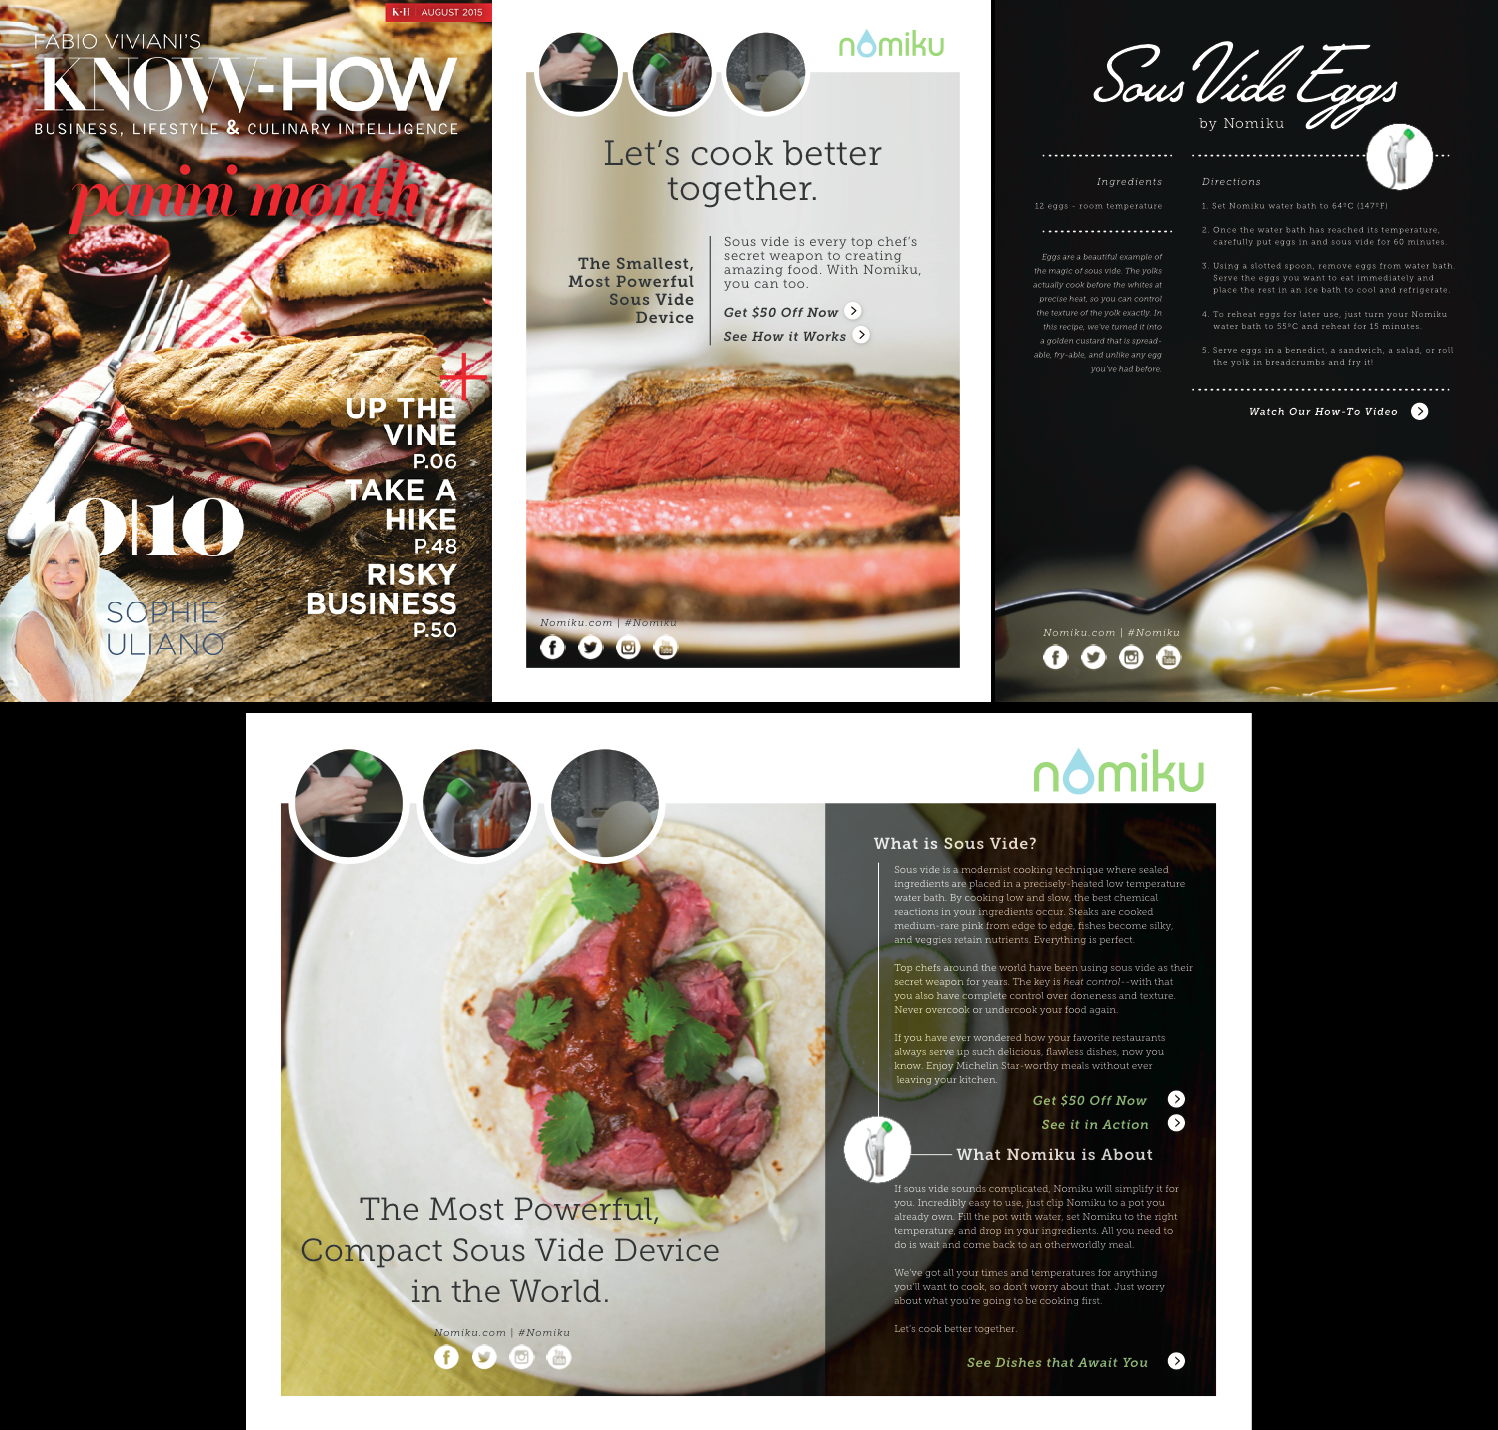 Featured on Fabio Viviani's KNOW-HOW